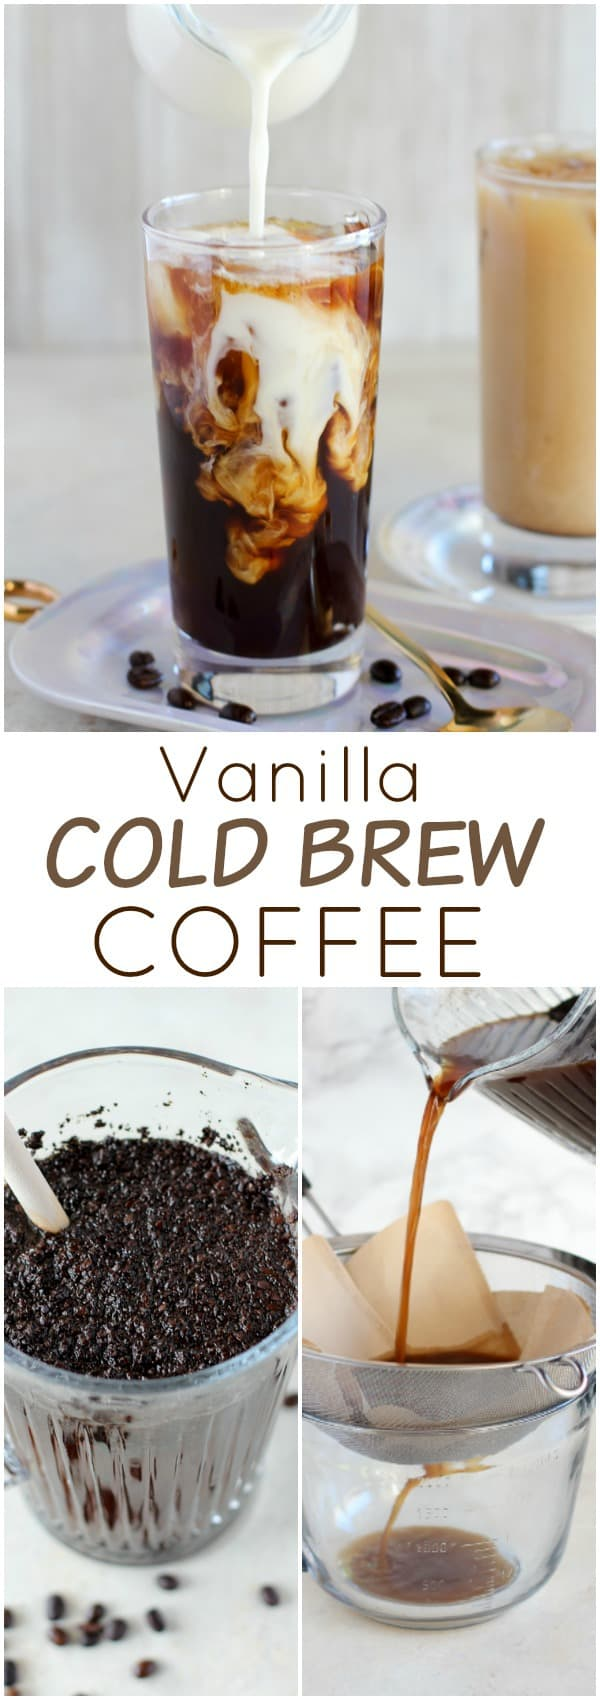 Cold brew coffee.